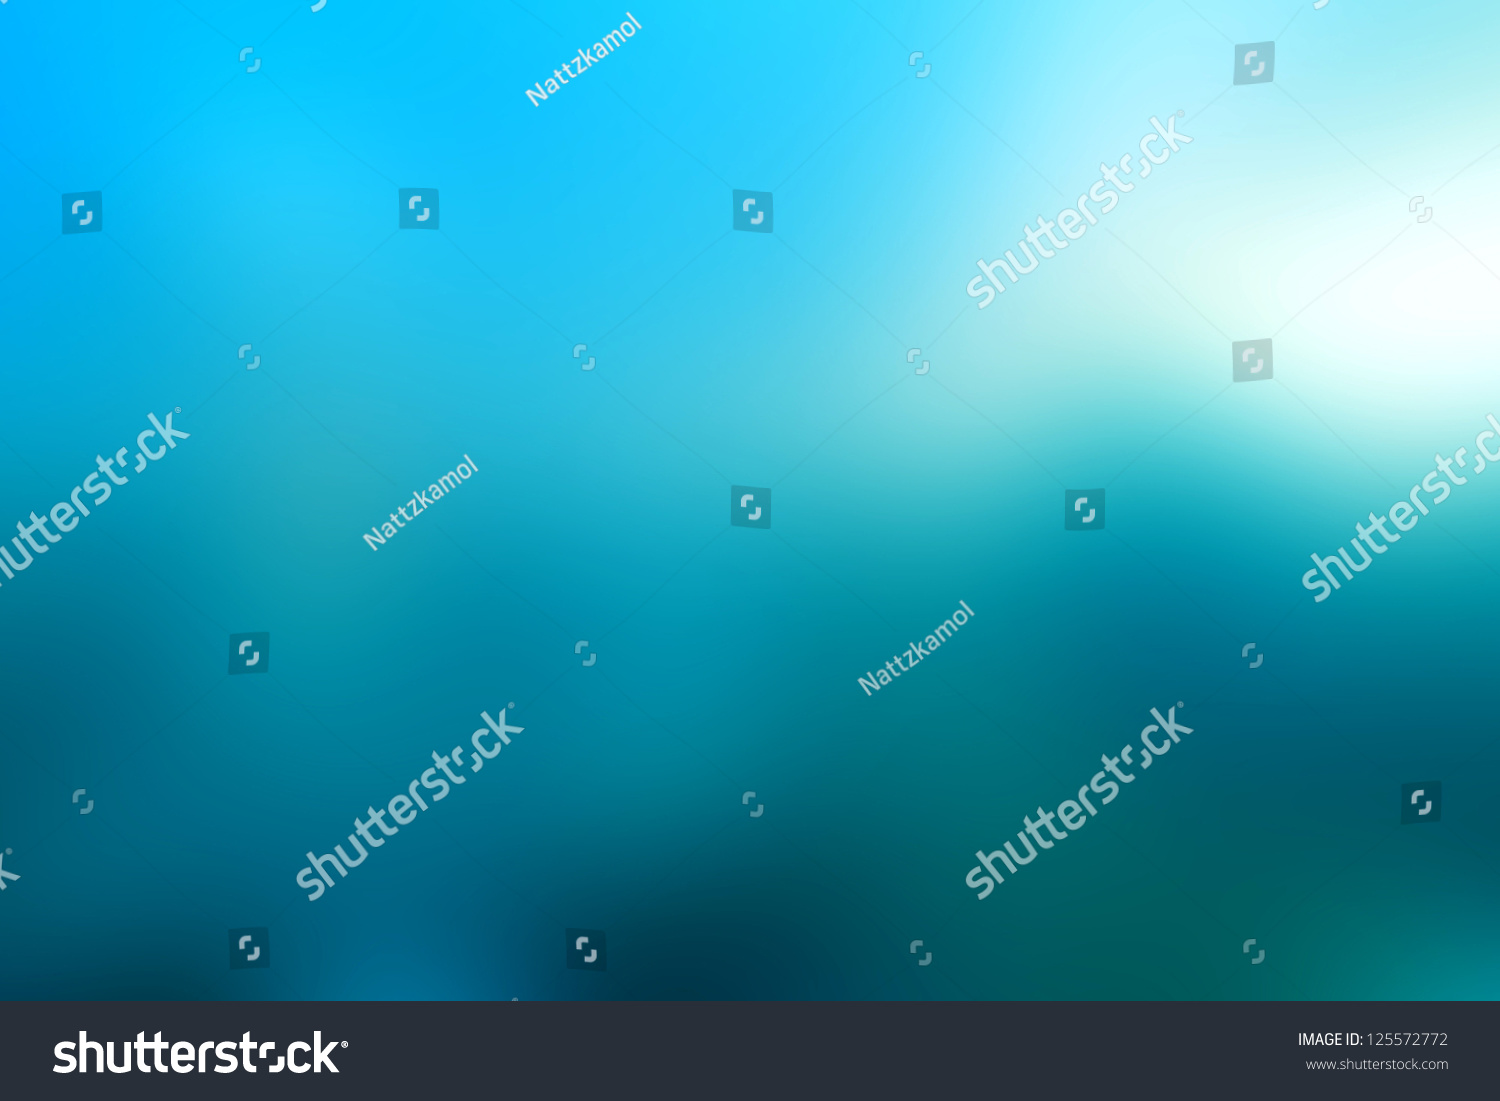 98dda11132 Abstract Blue Effect Background Stock Photo (Edit Now) 125572772 ...